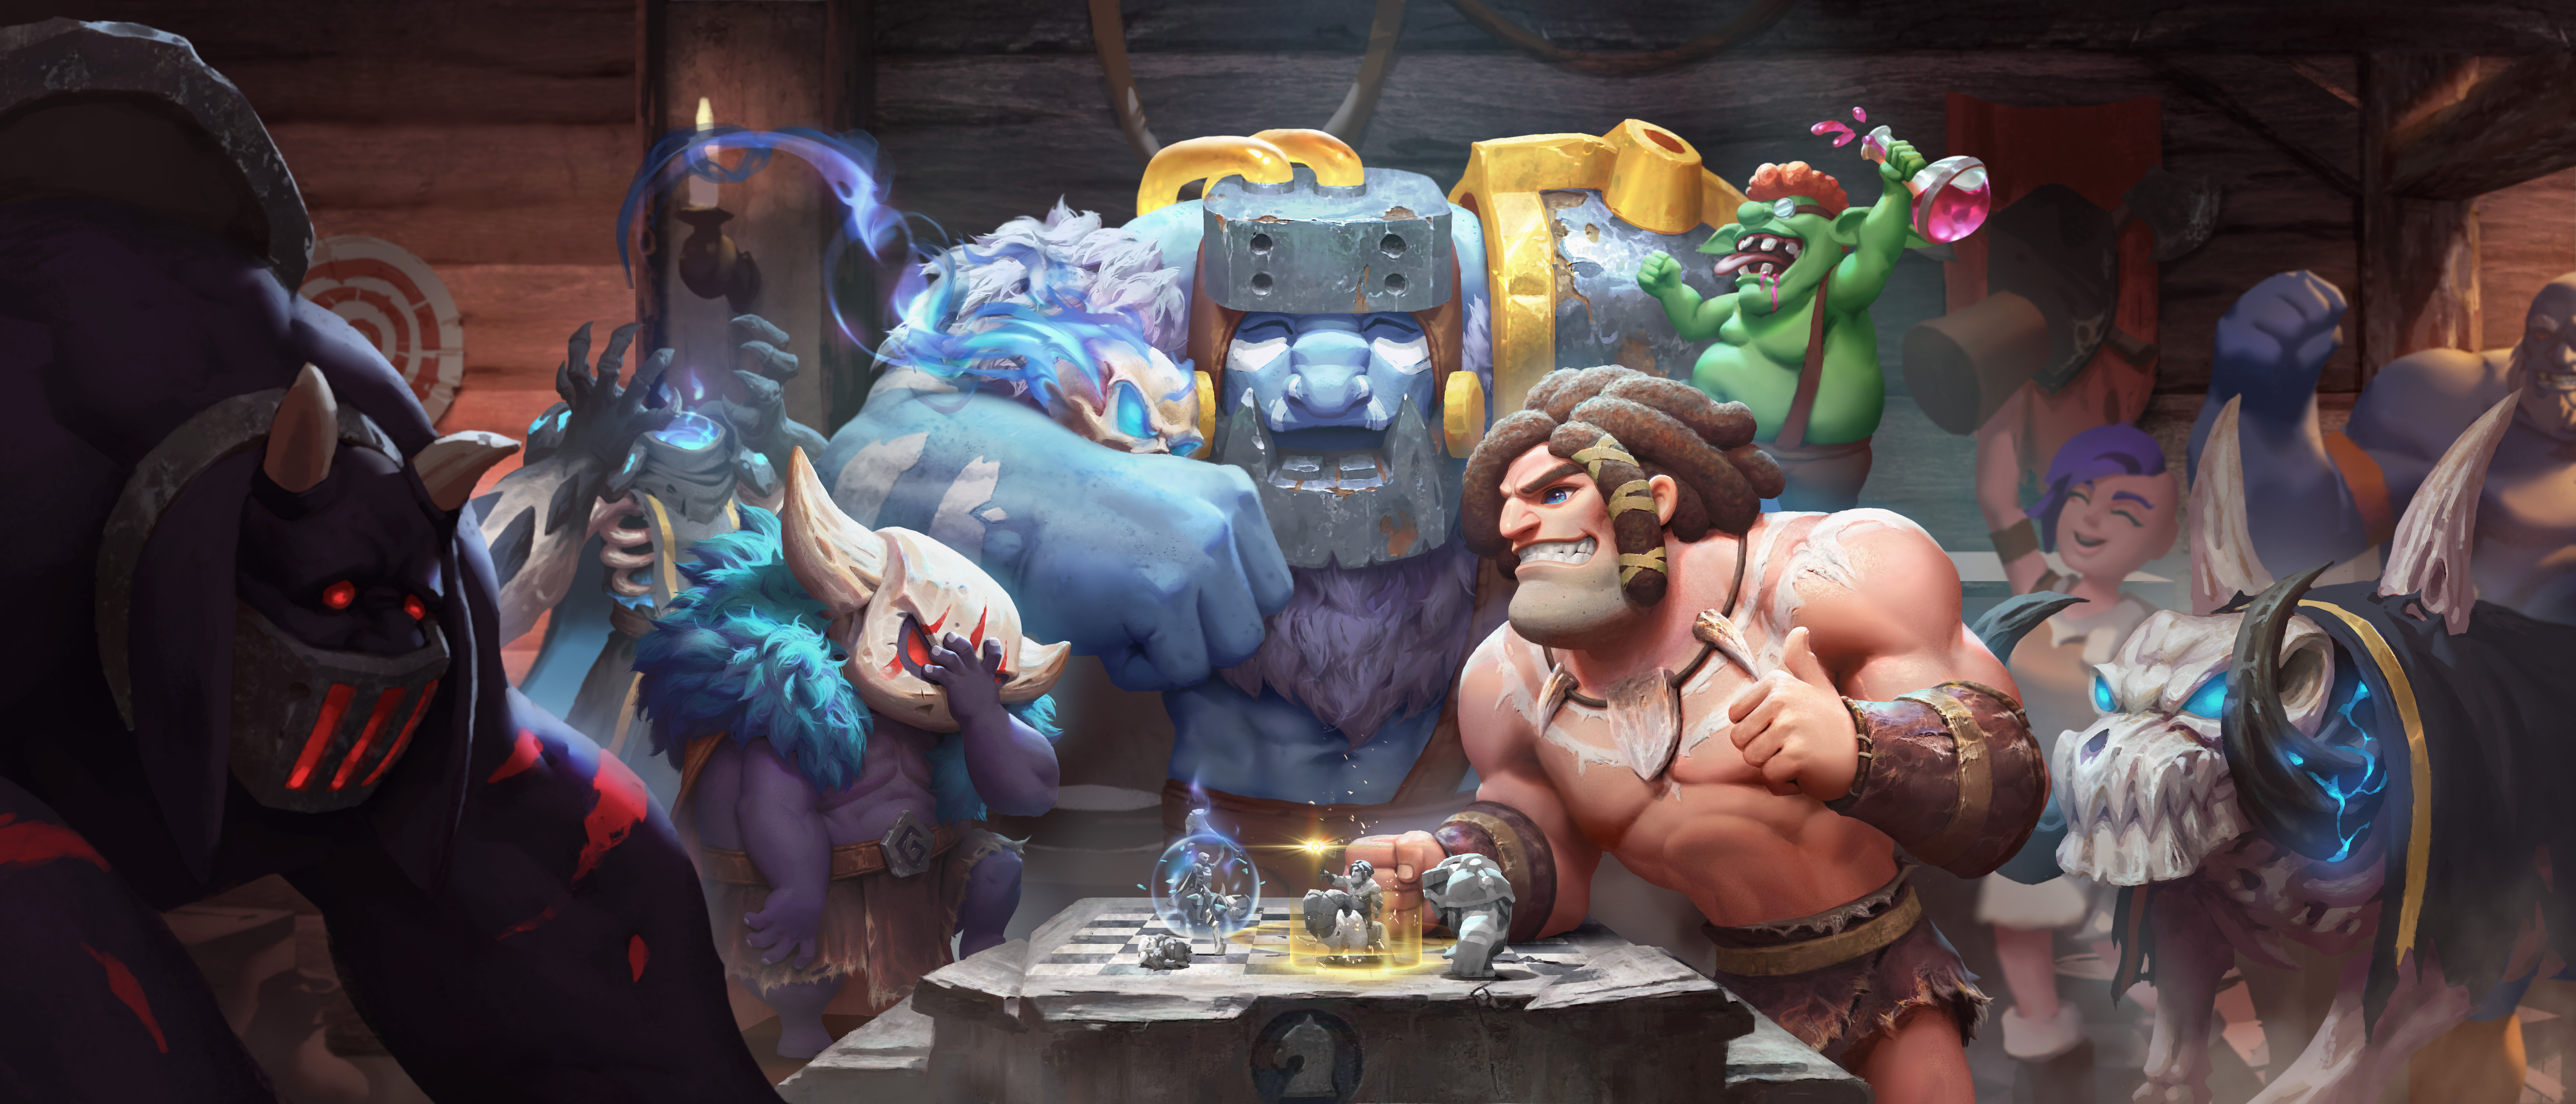 auto chess 4k 1598657557 - Auto Chess 4k - Auto Chess wallpapers, Auto Chess game wallpapers, Auto Chess 4k wallpapers